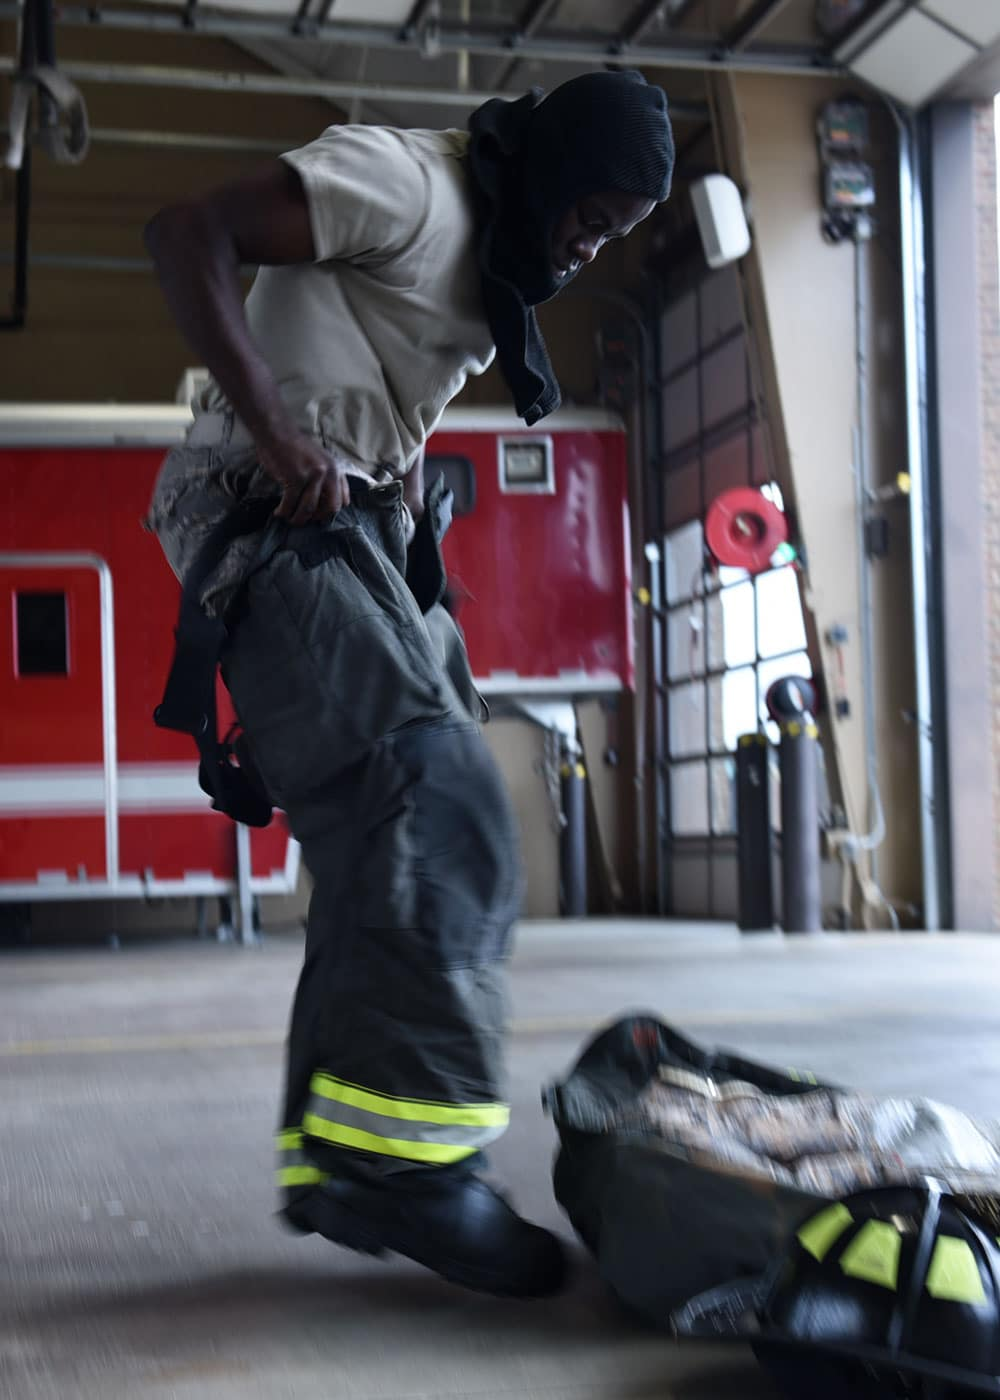 U.S. Air Force Airman 1st Class Tevado Beckford Fire Protection apprentice, dons his fire gear in 39 seconds. The 19th CES Fire Department firefighters respond to fires or emergency situations on base at a moment's notice.